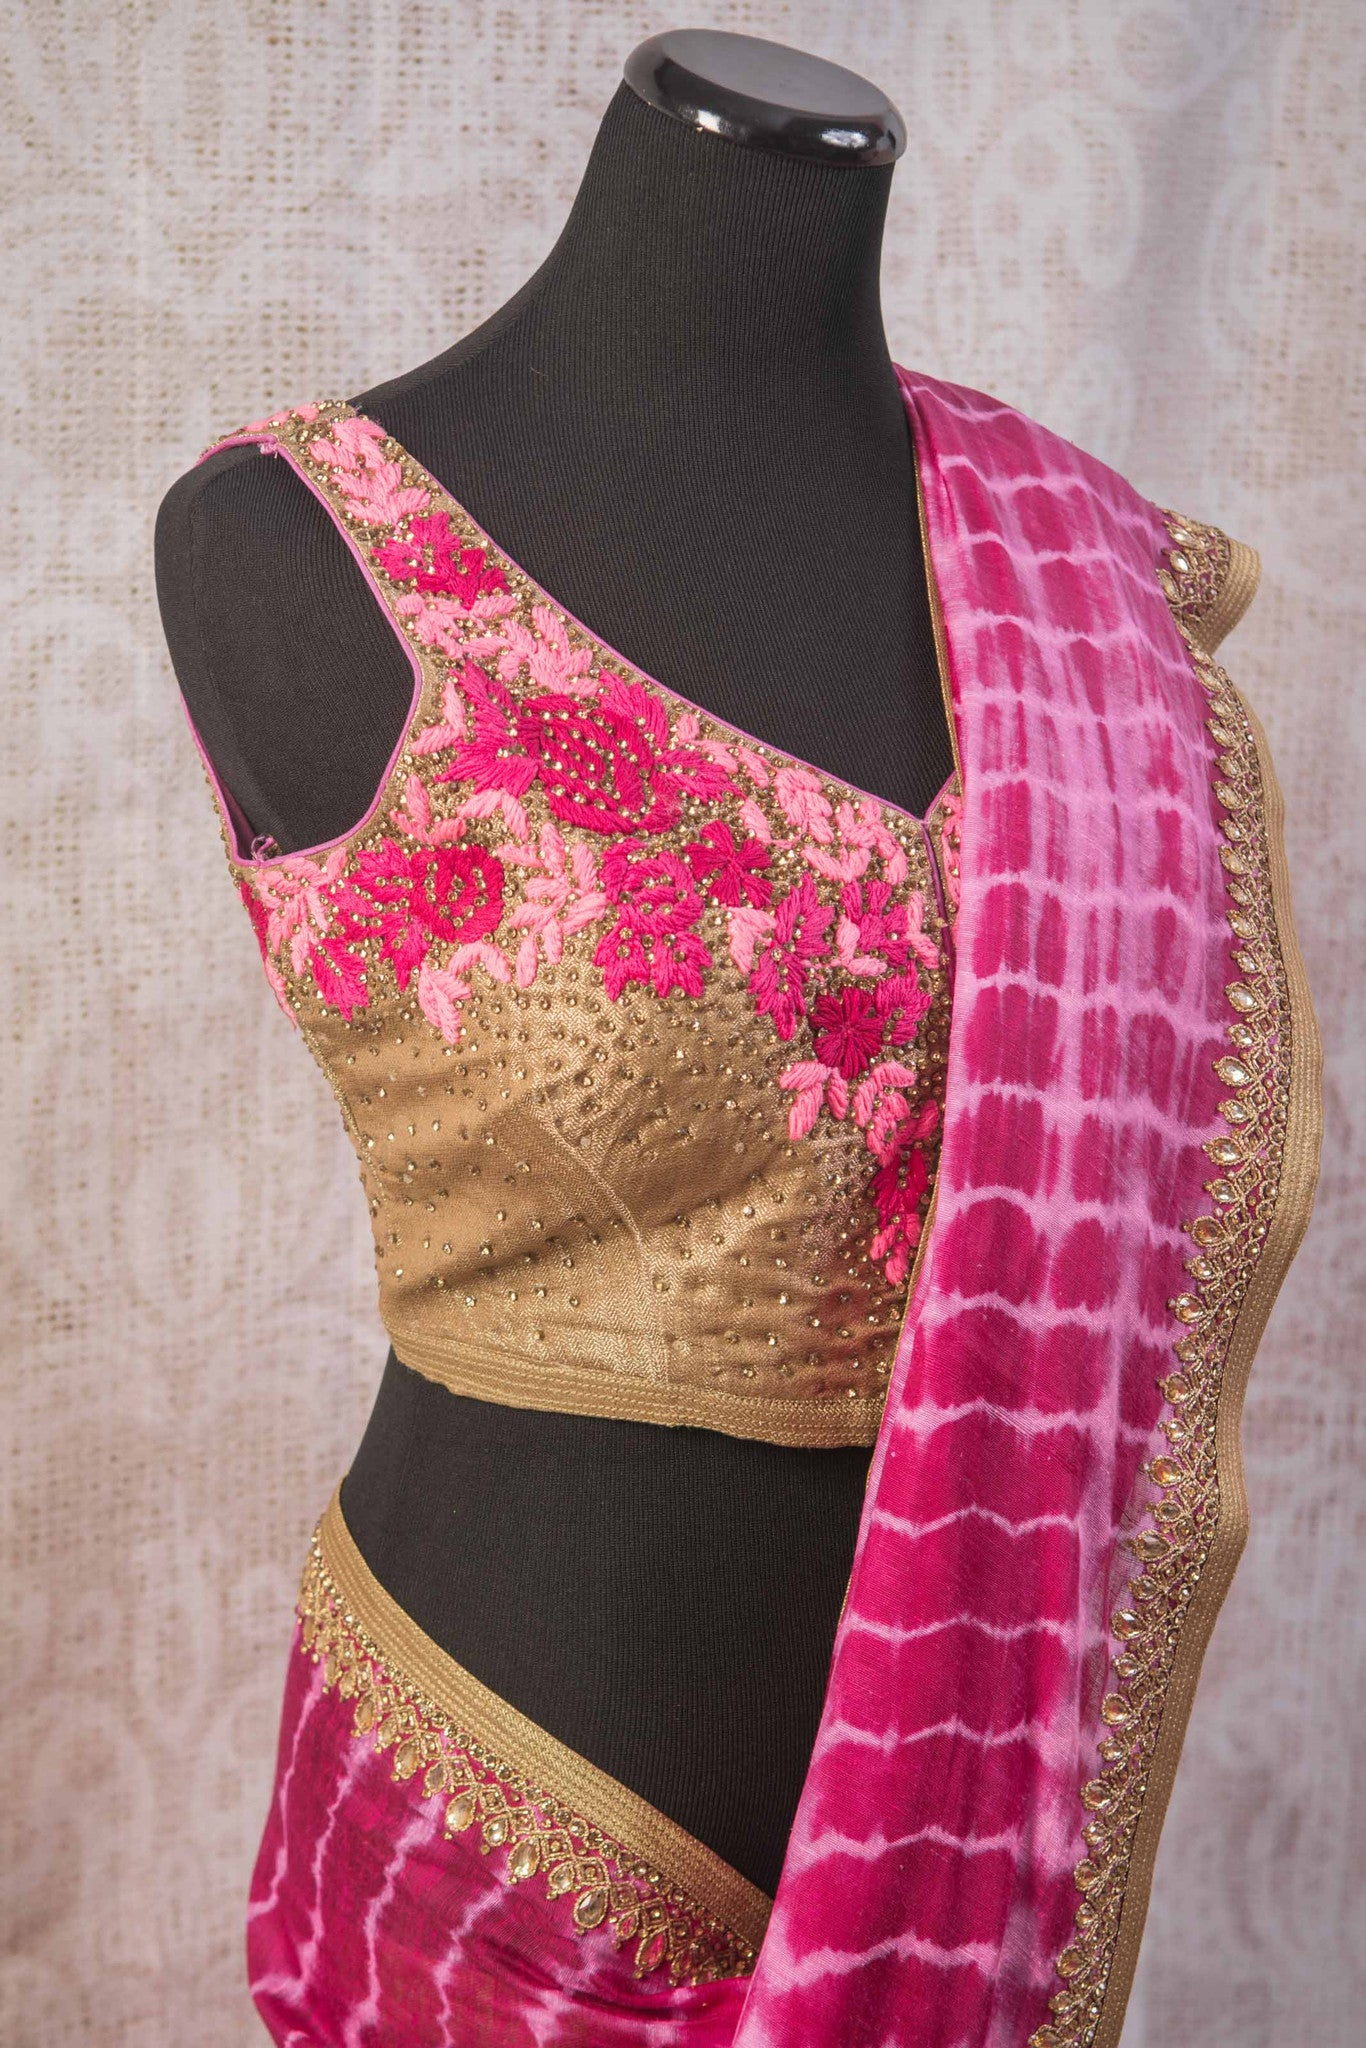 90b806 Indian tie dye saree with an embroidered blouse and border. The pink sari online in USA at our store Pure Elegance is wonderfully versatile and an absolute classic!